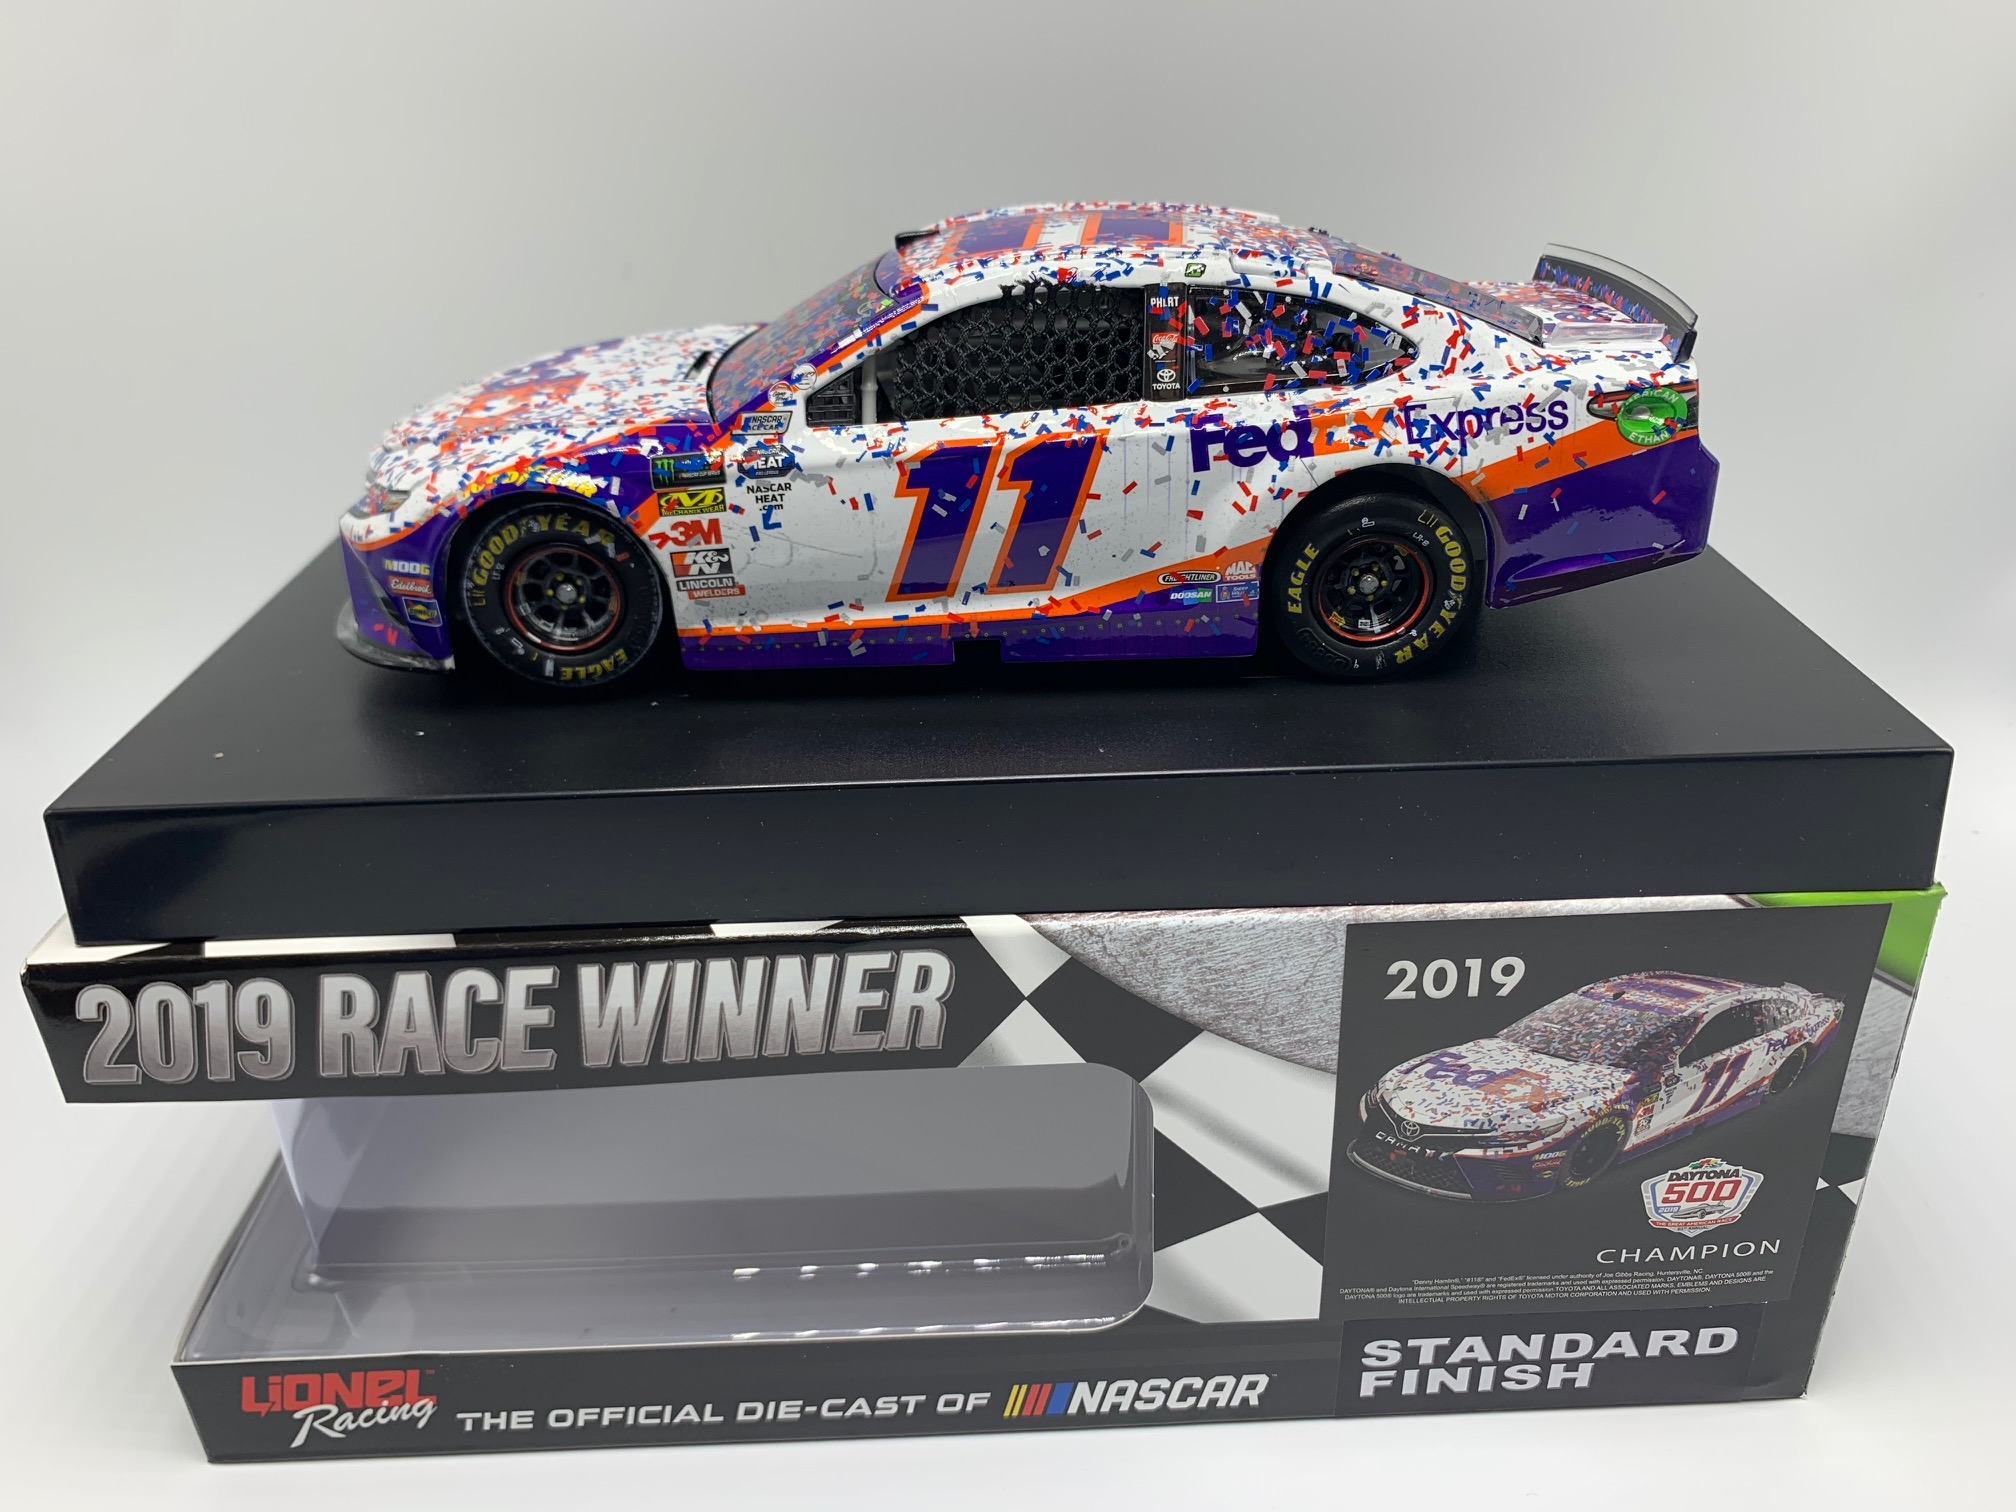 DENNY HAMLIN 2019 FEDEX EXPRESS DAYTONA 500 RACED WIN 1:24 ARC DIECAST - DIN # 1